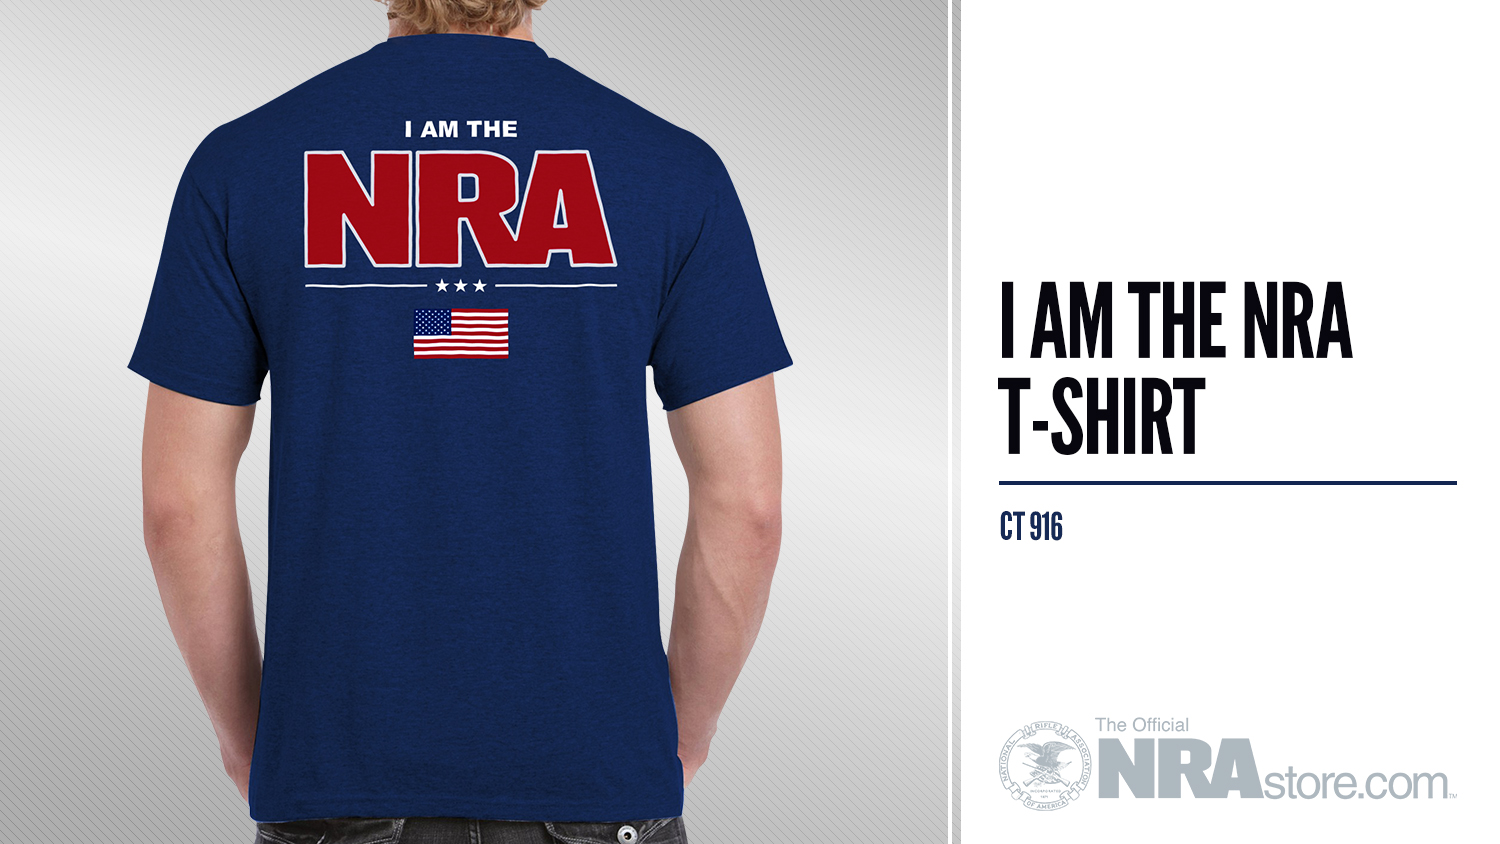 NRAstore Product Highlight: 'I AM THE NRA' T-Shirt